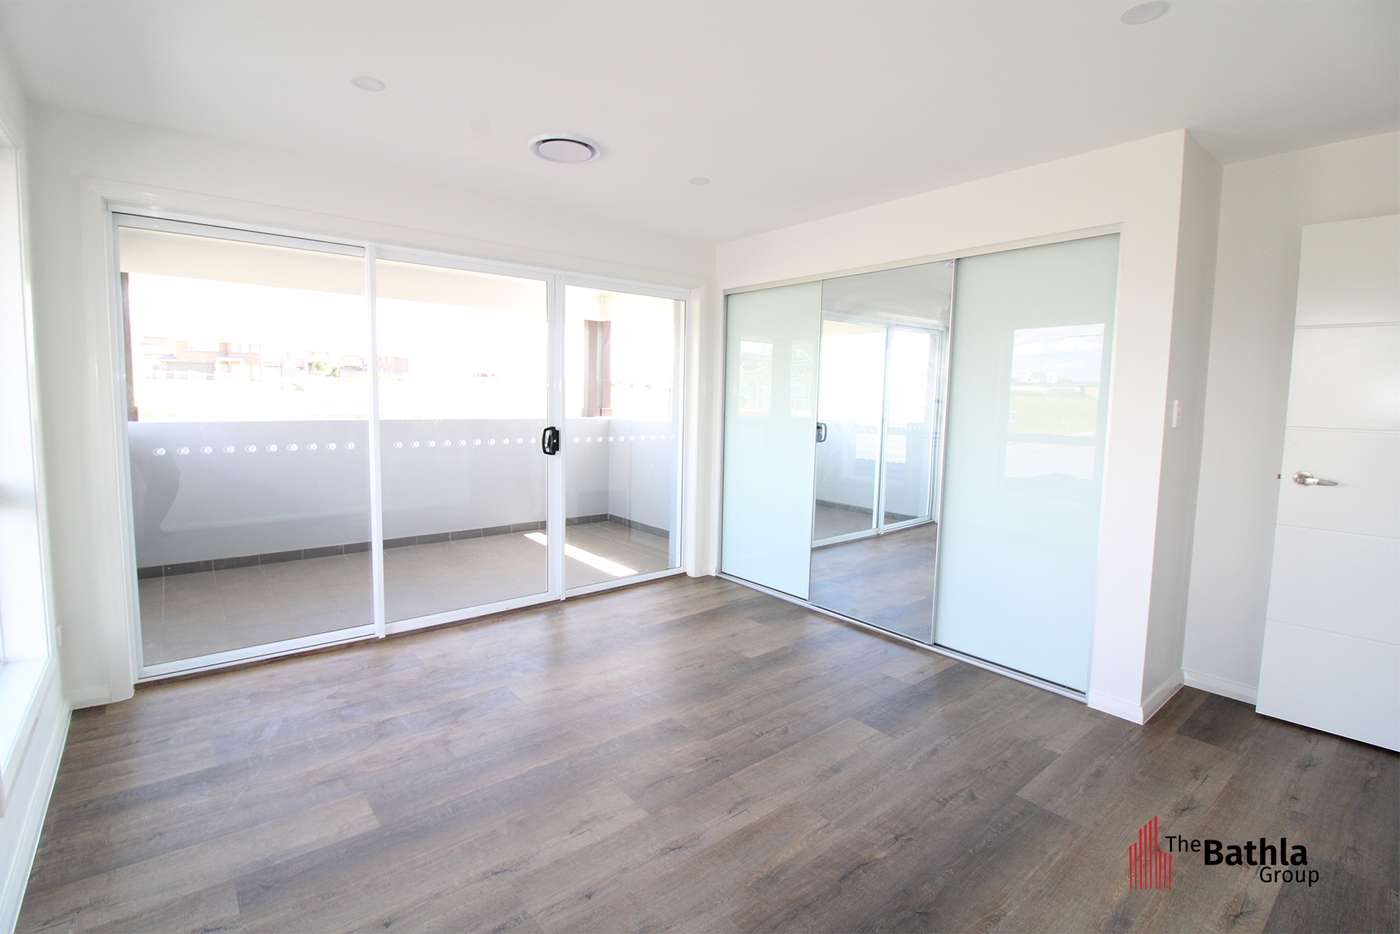 Sixth view of Homely house listing, 3 Rubicon Street, Schofields NSW 2762